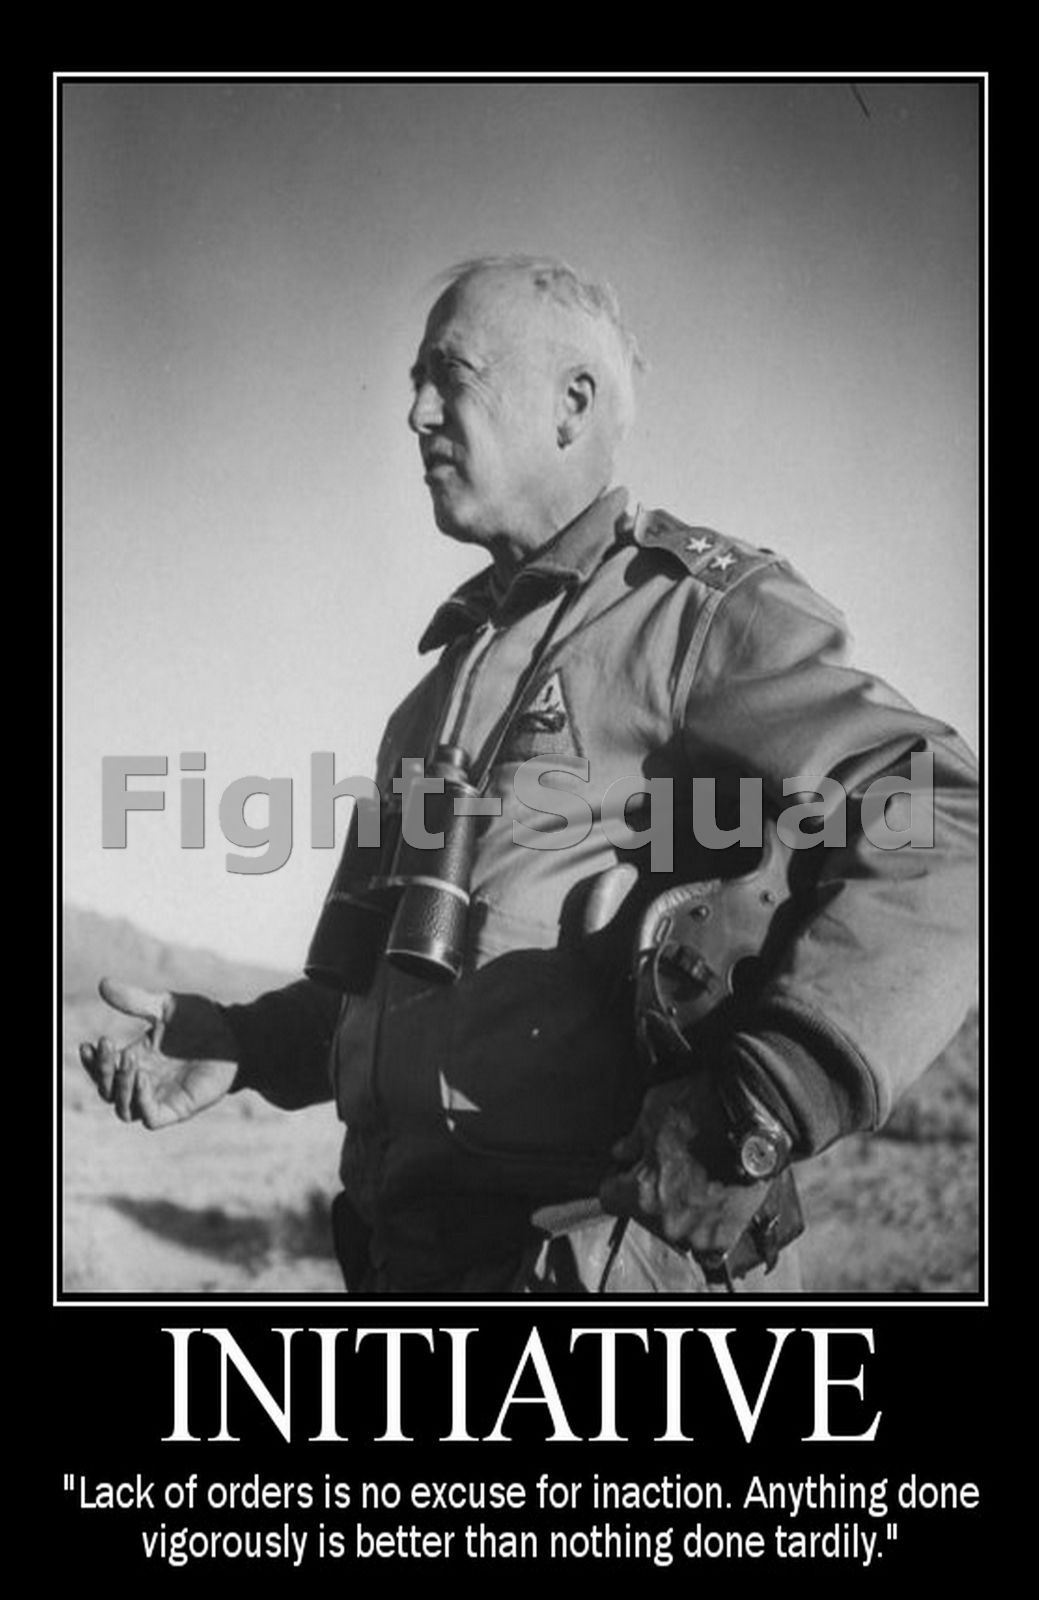 $4.95 - Ww2 Picture Photo General George Patton Quote About Initiative 2166  #ebay #Collectibles